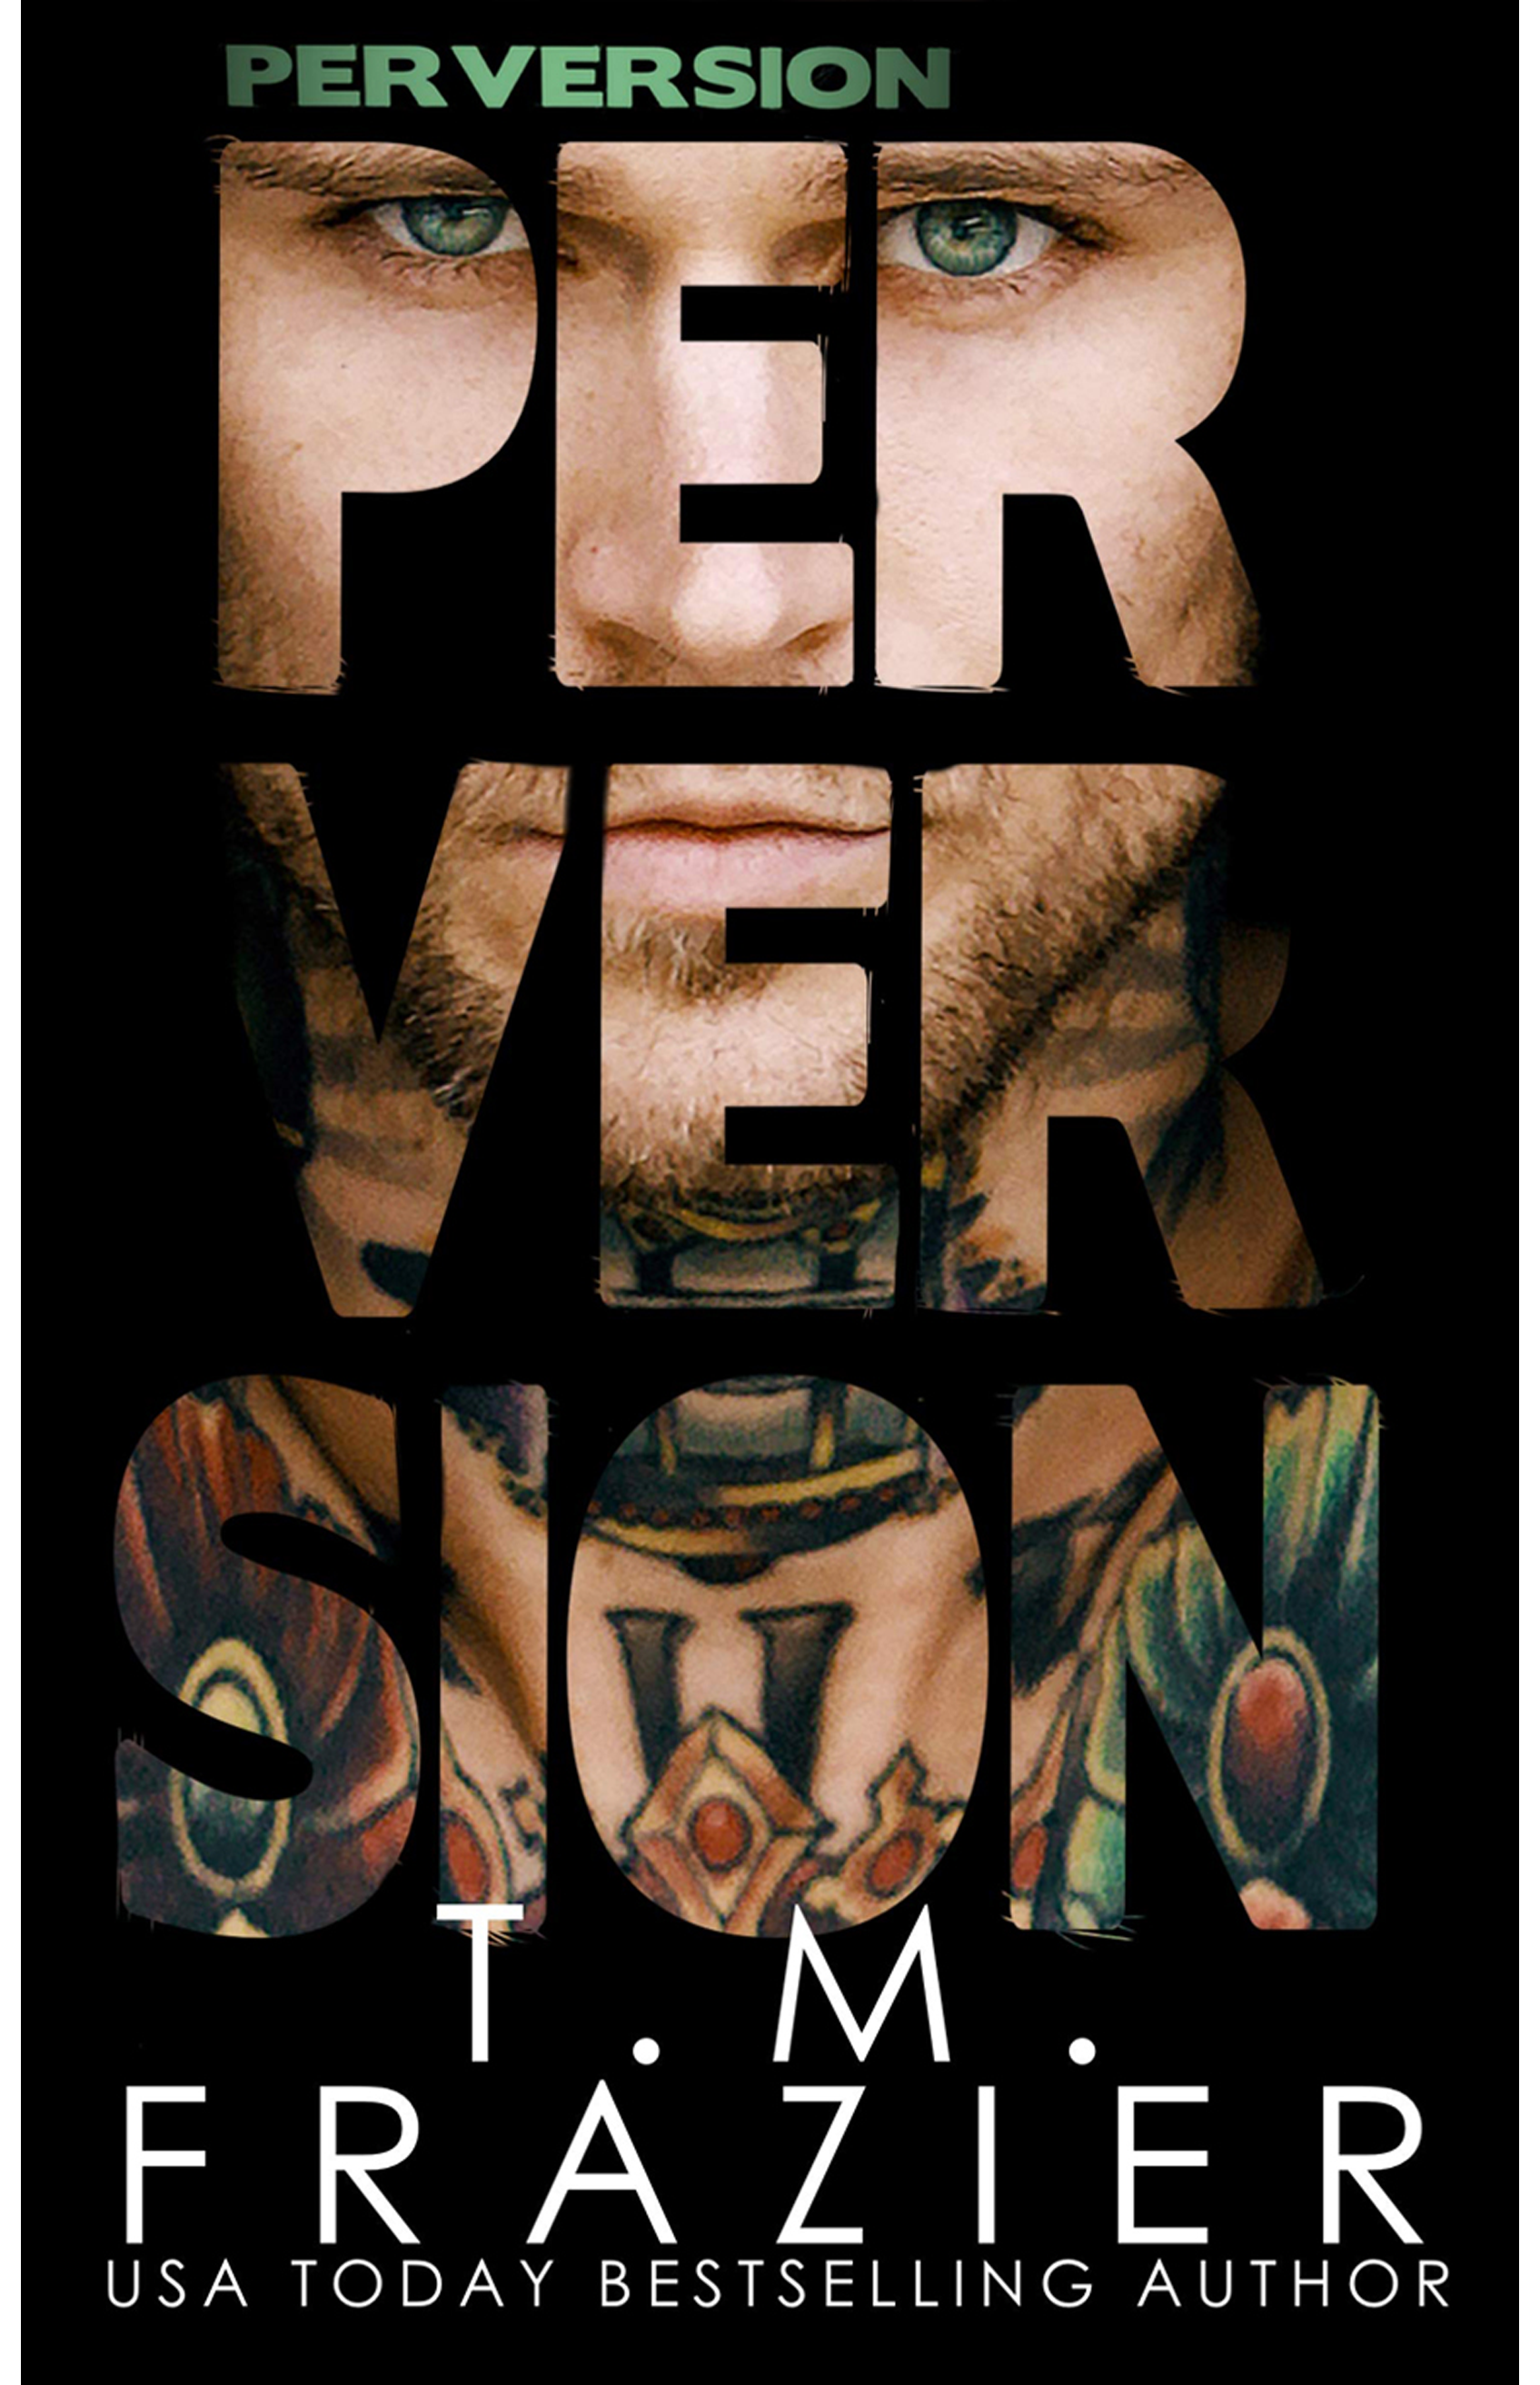 Perversion